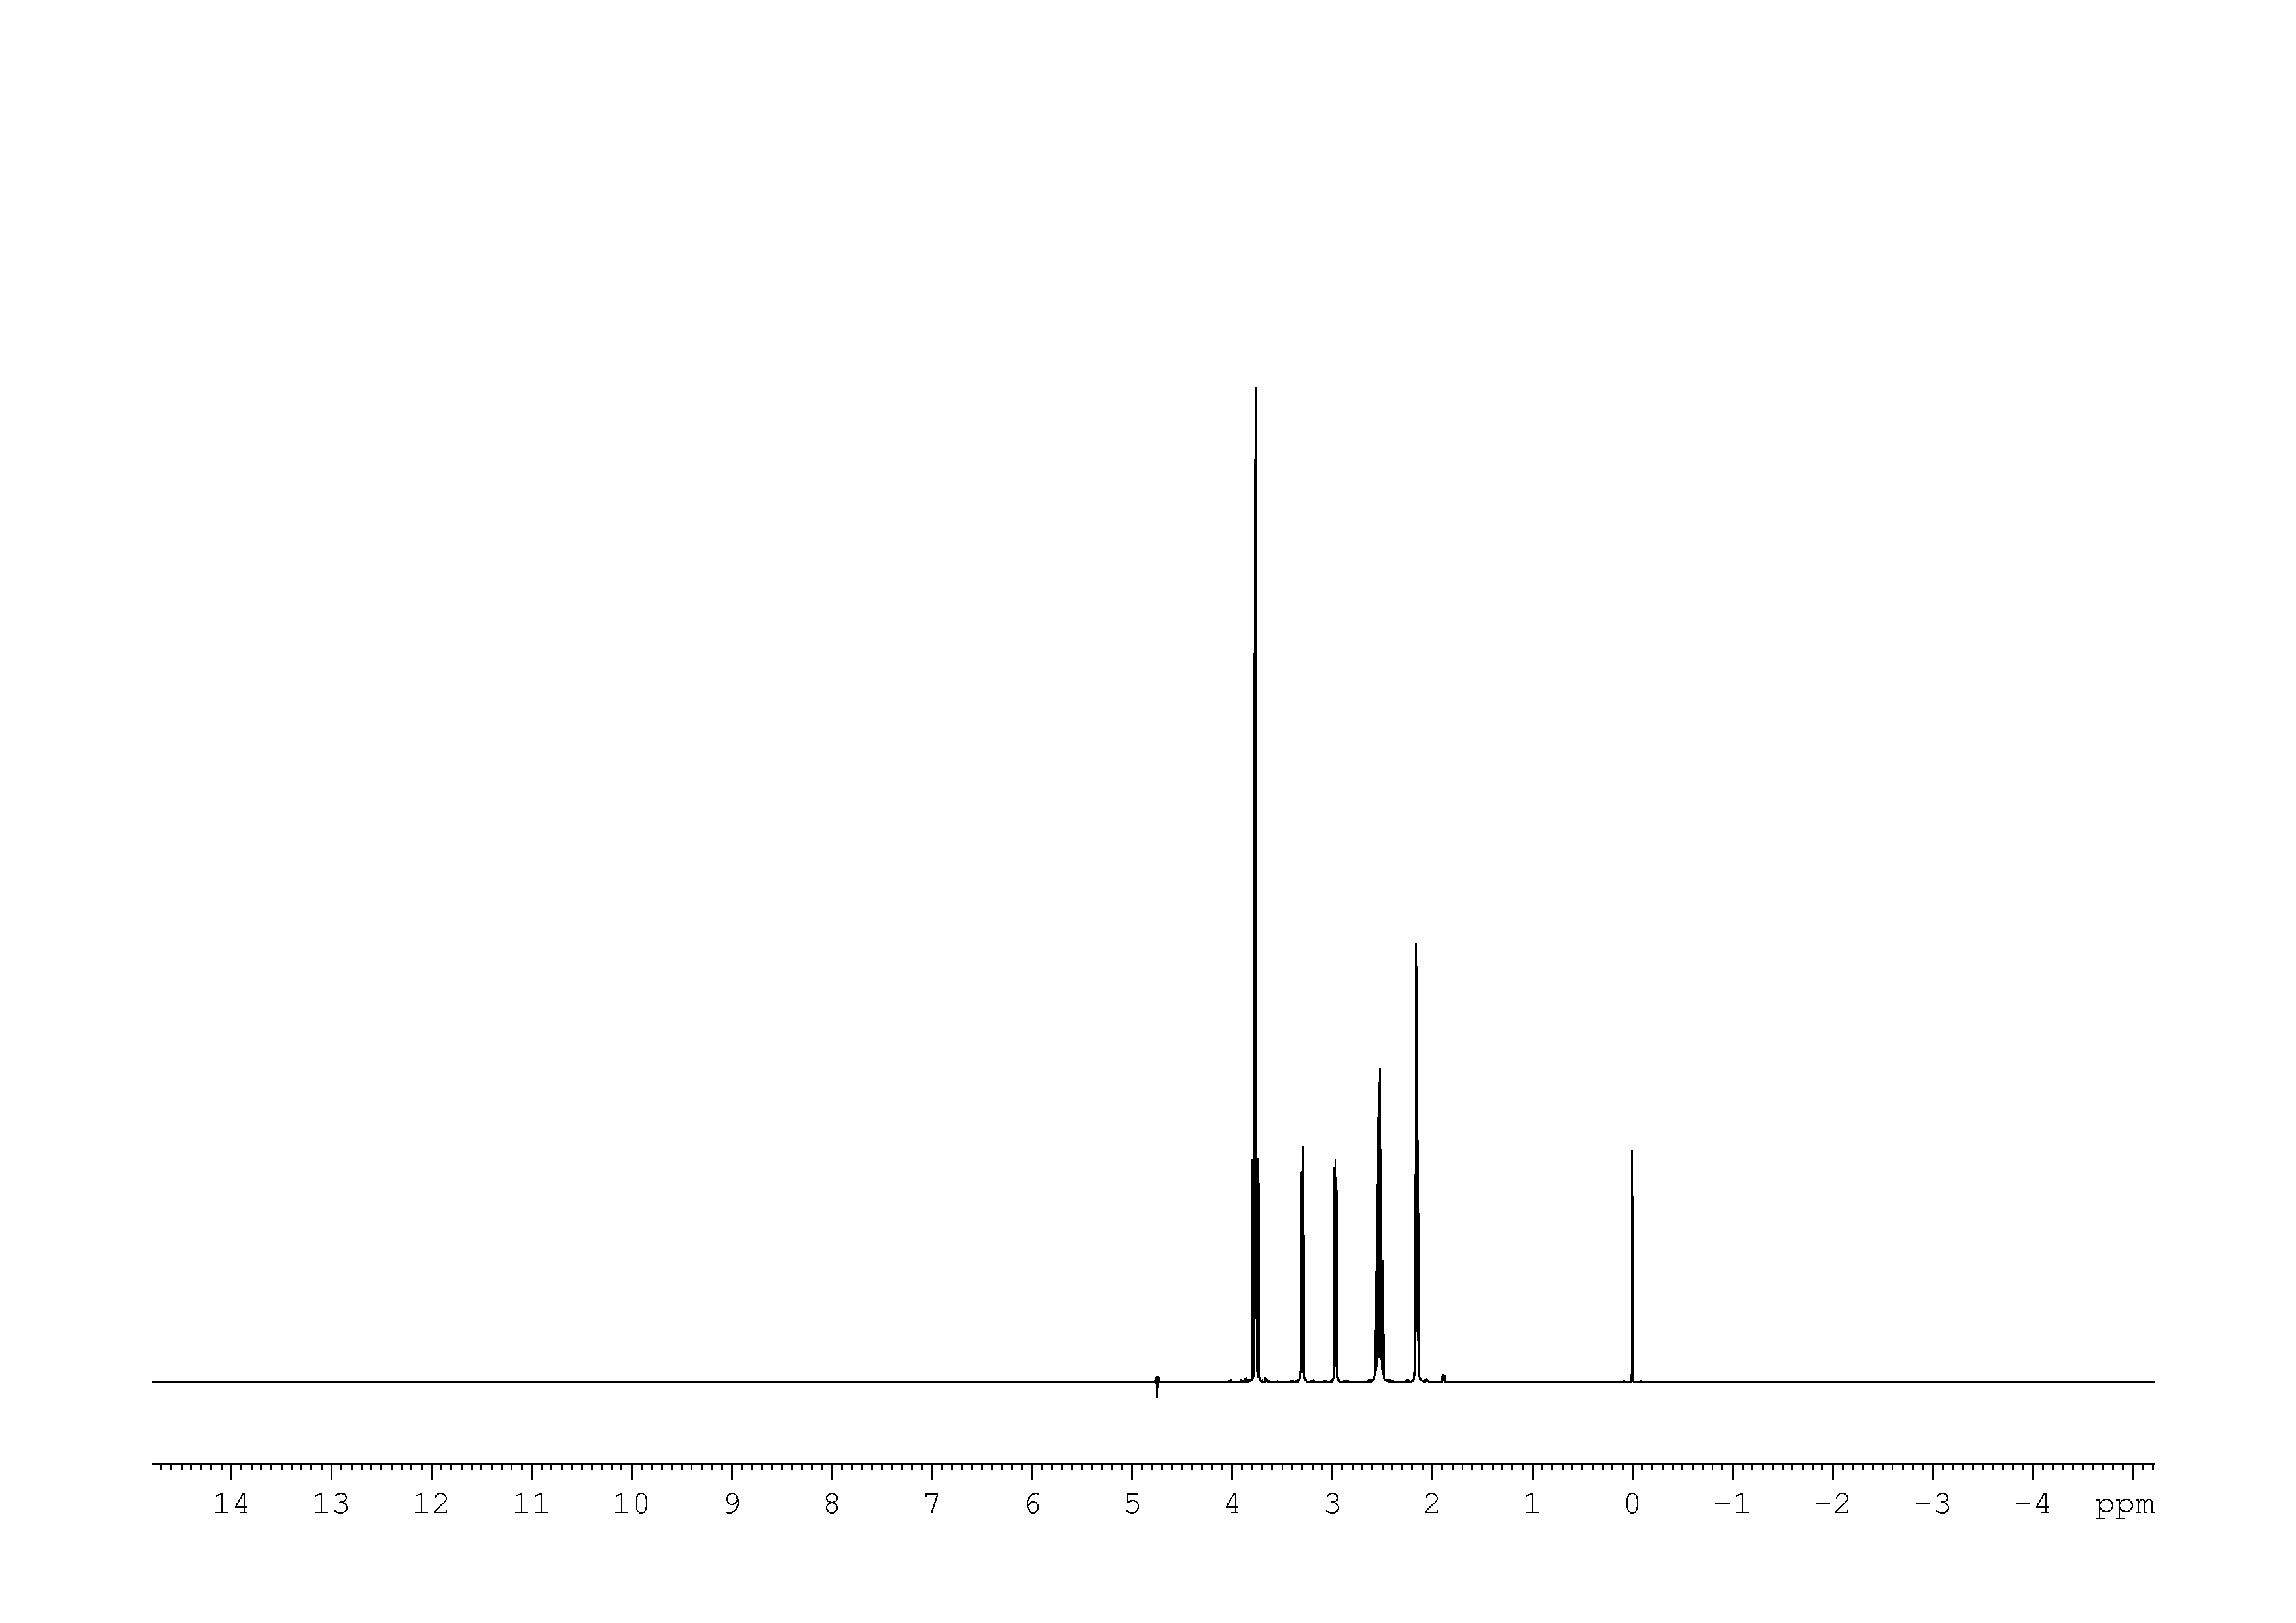 1D 1H, NOESY, 7.4 spectrum for L(-)-Glutathione, oxidized